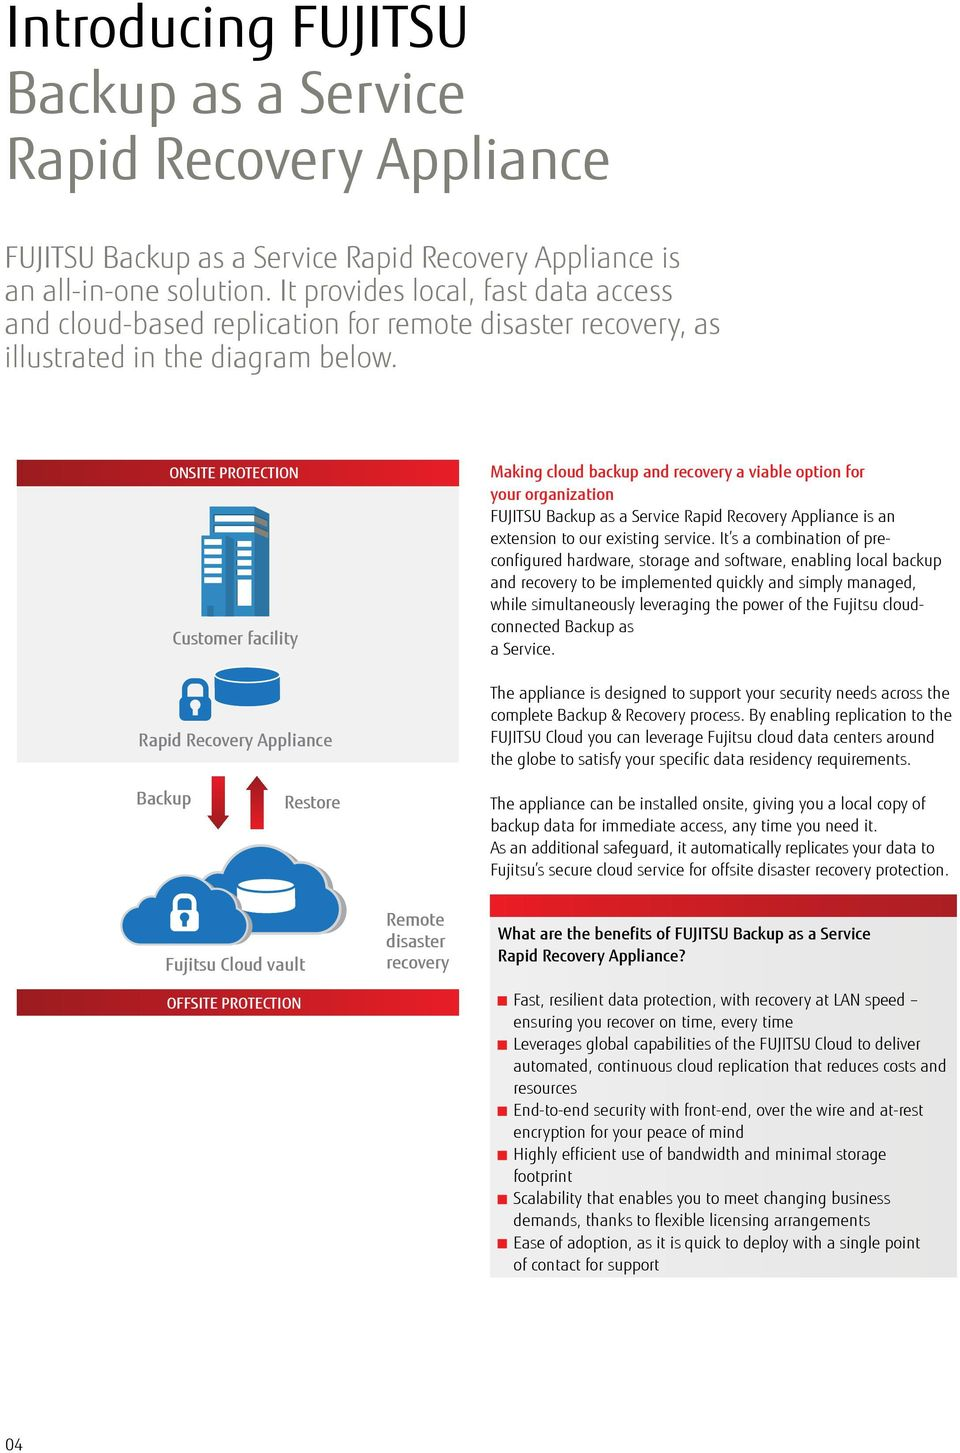 ONSITE PROTECTION Customer facility Rapid Recovery Appliance Making cloud backup and recovery a viable option for your organization FUJITSU Backup as a Service Rapid Recovery Appliance is an